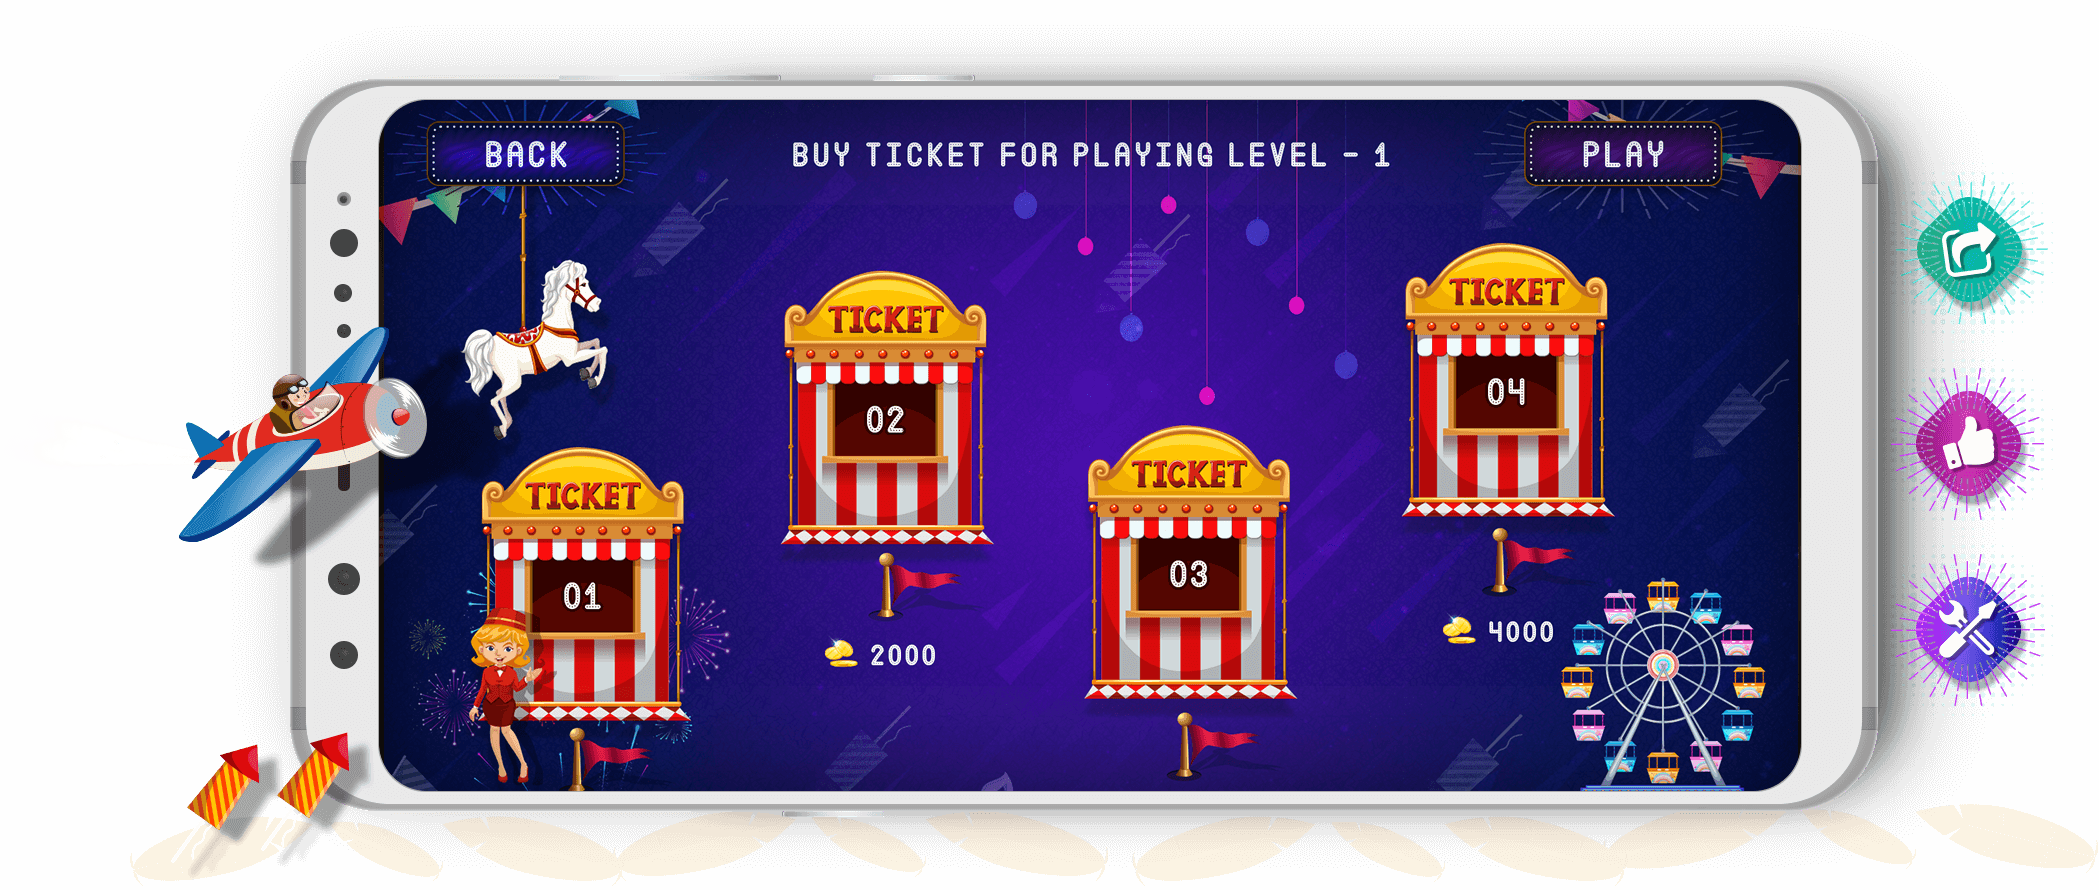 Tambola Game Ticket Screen